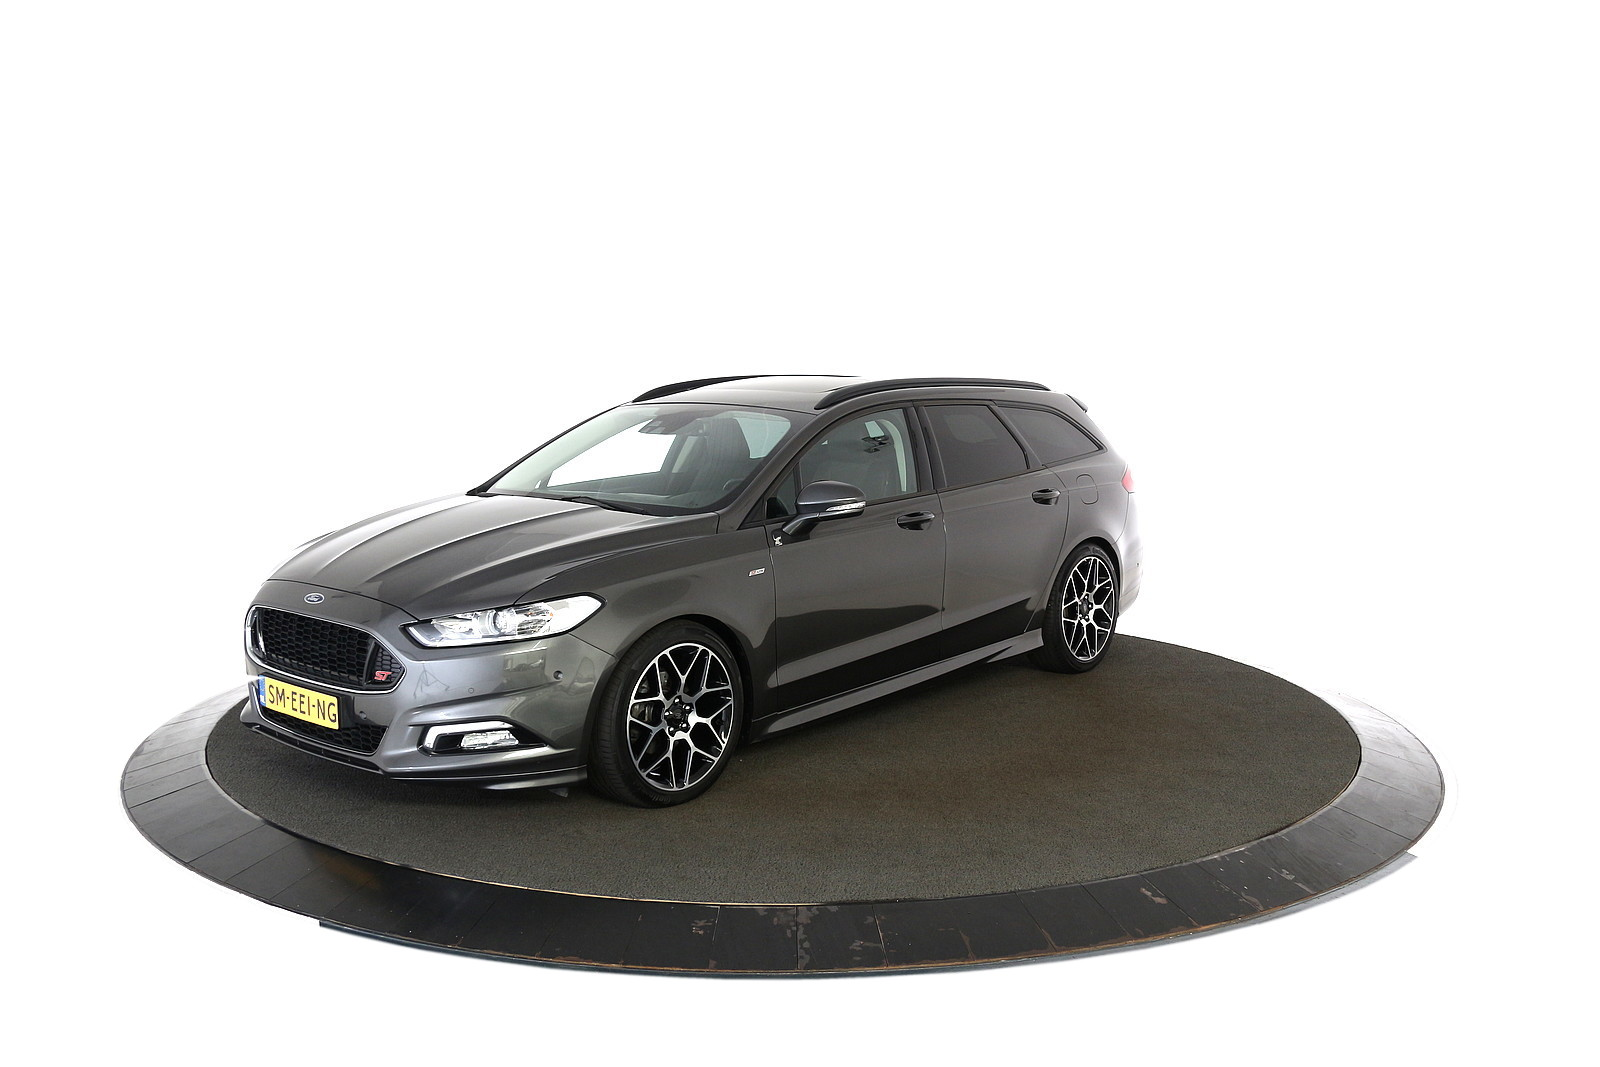 Ford Mondeo Wagon 2.0 ST-Line